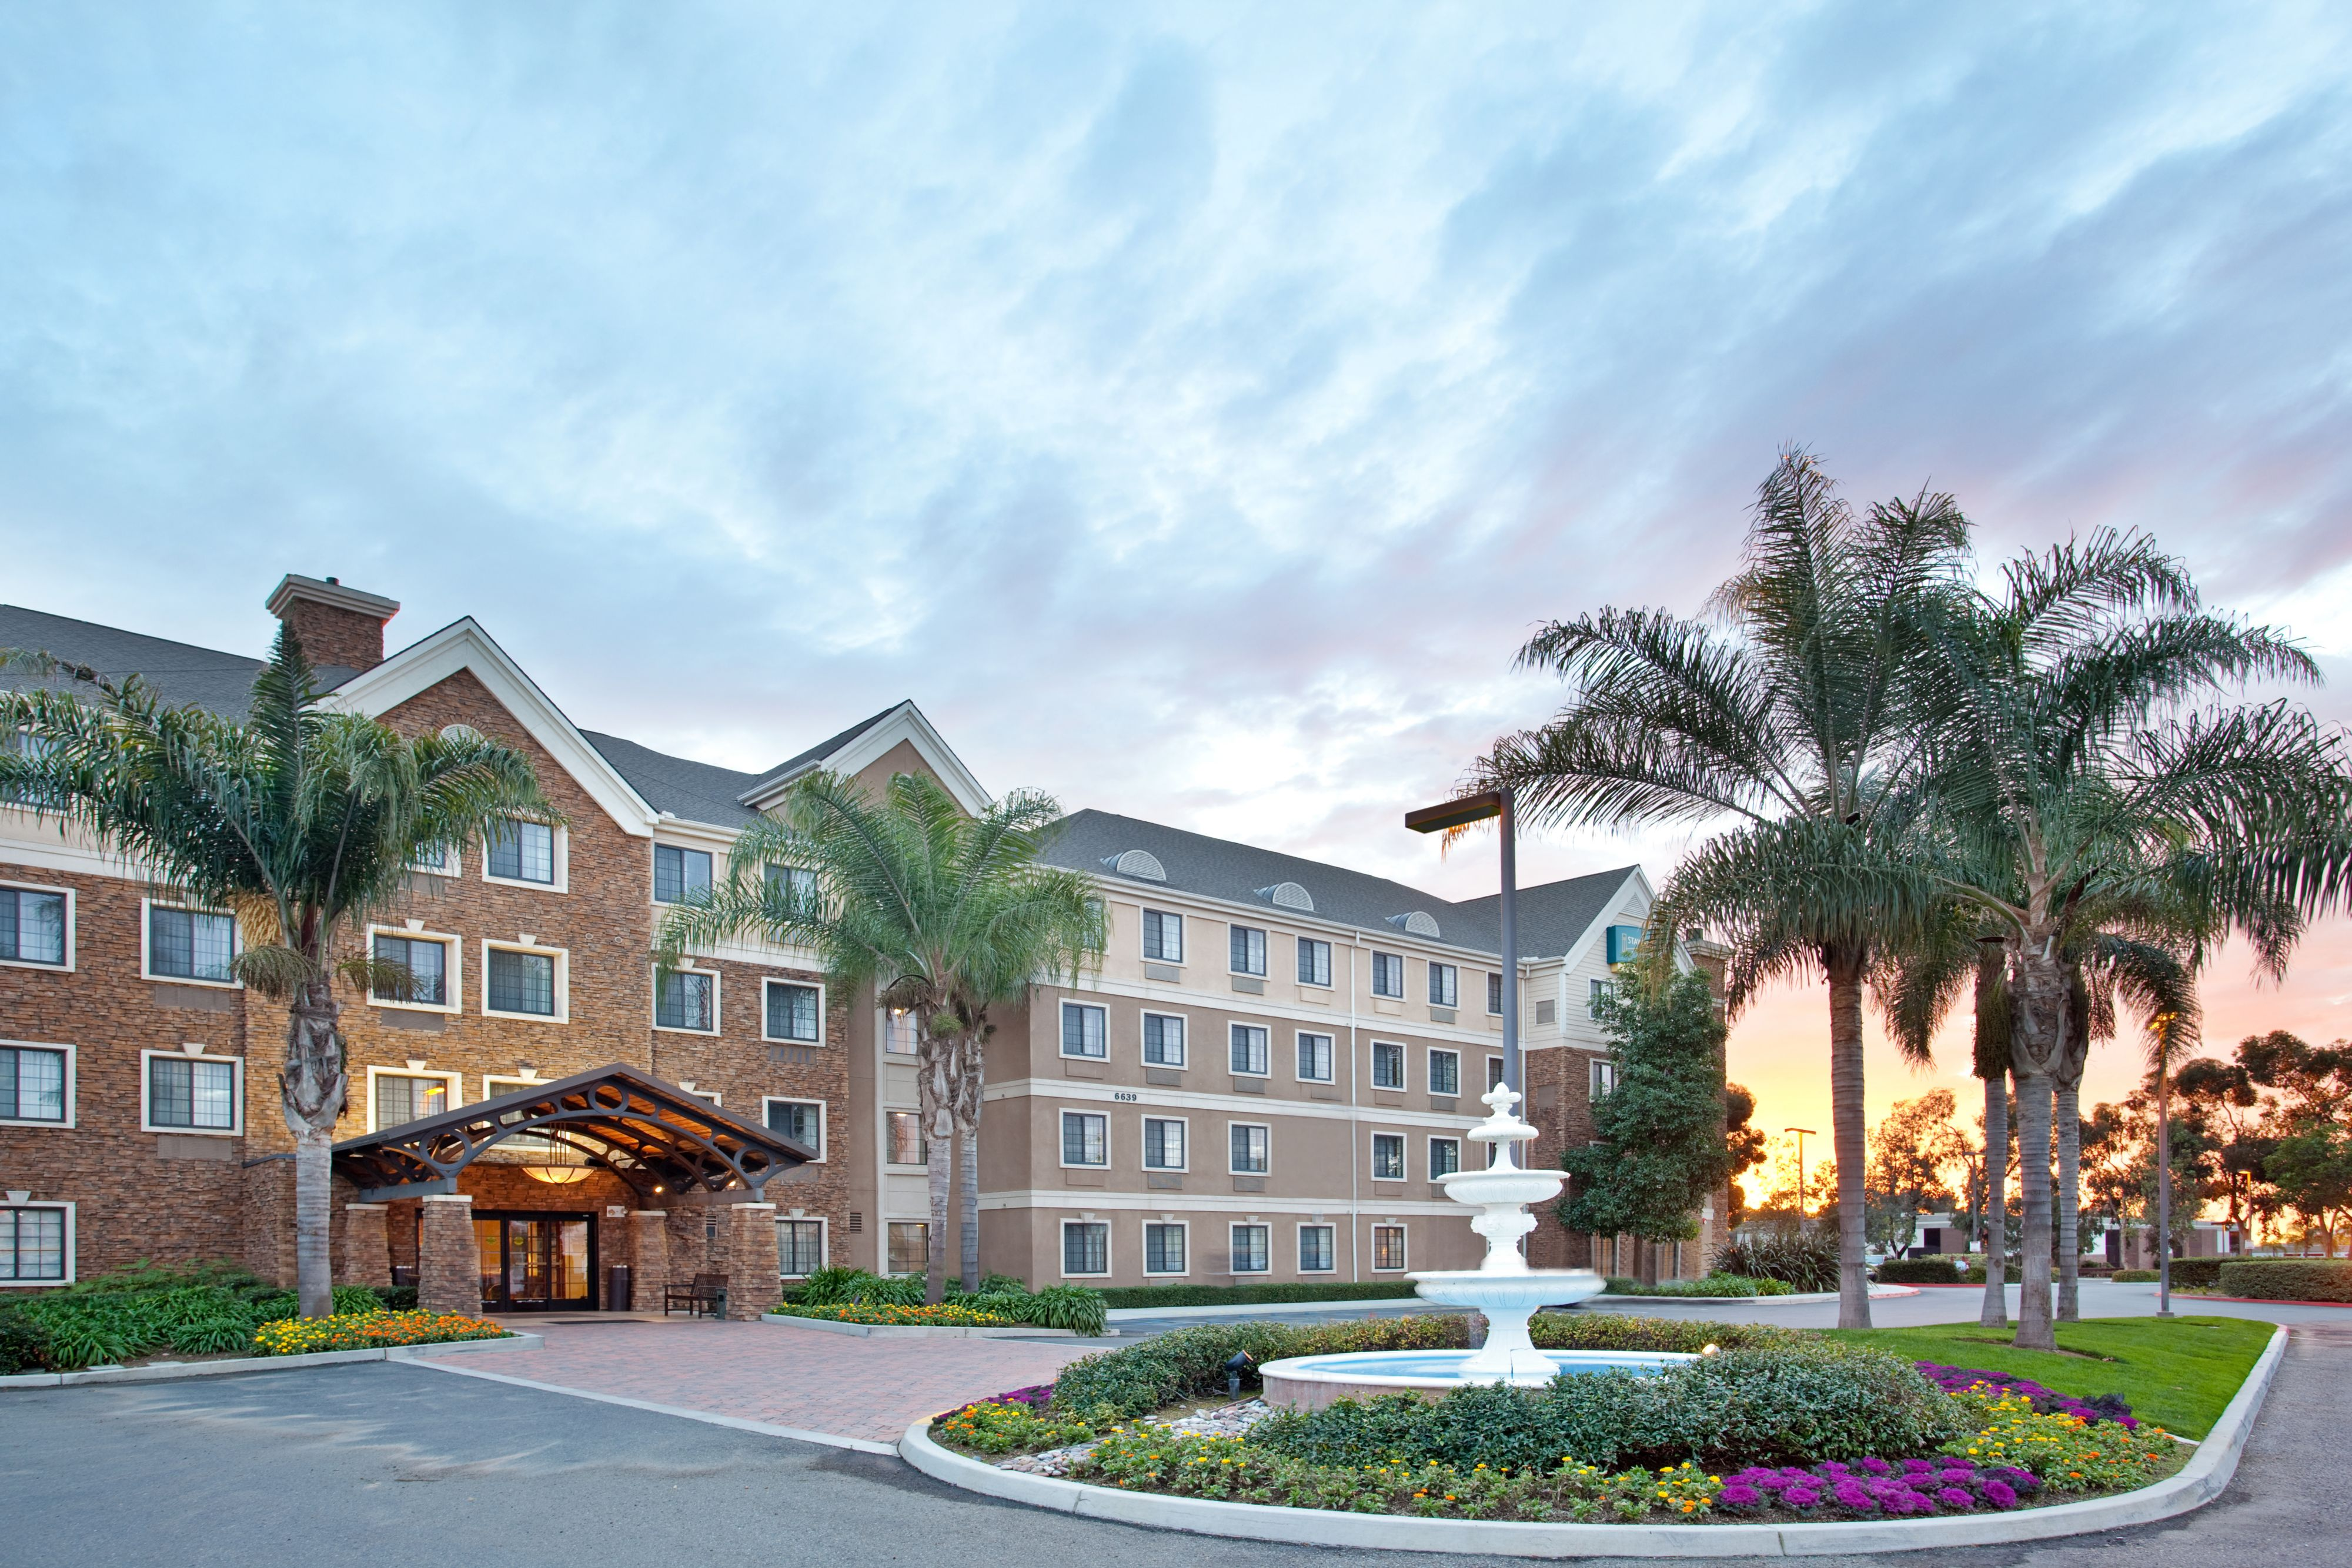 Staybridge suites san diego sorrento mesa in san diego ca for Hotels 92109